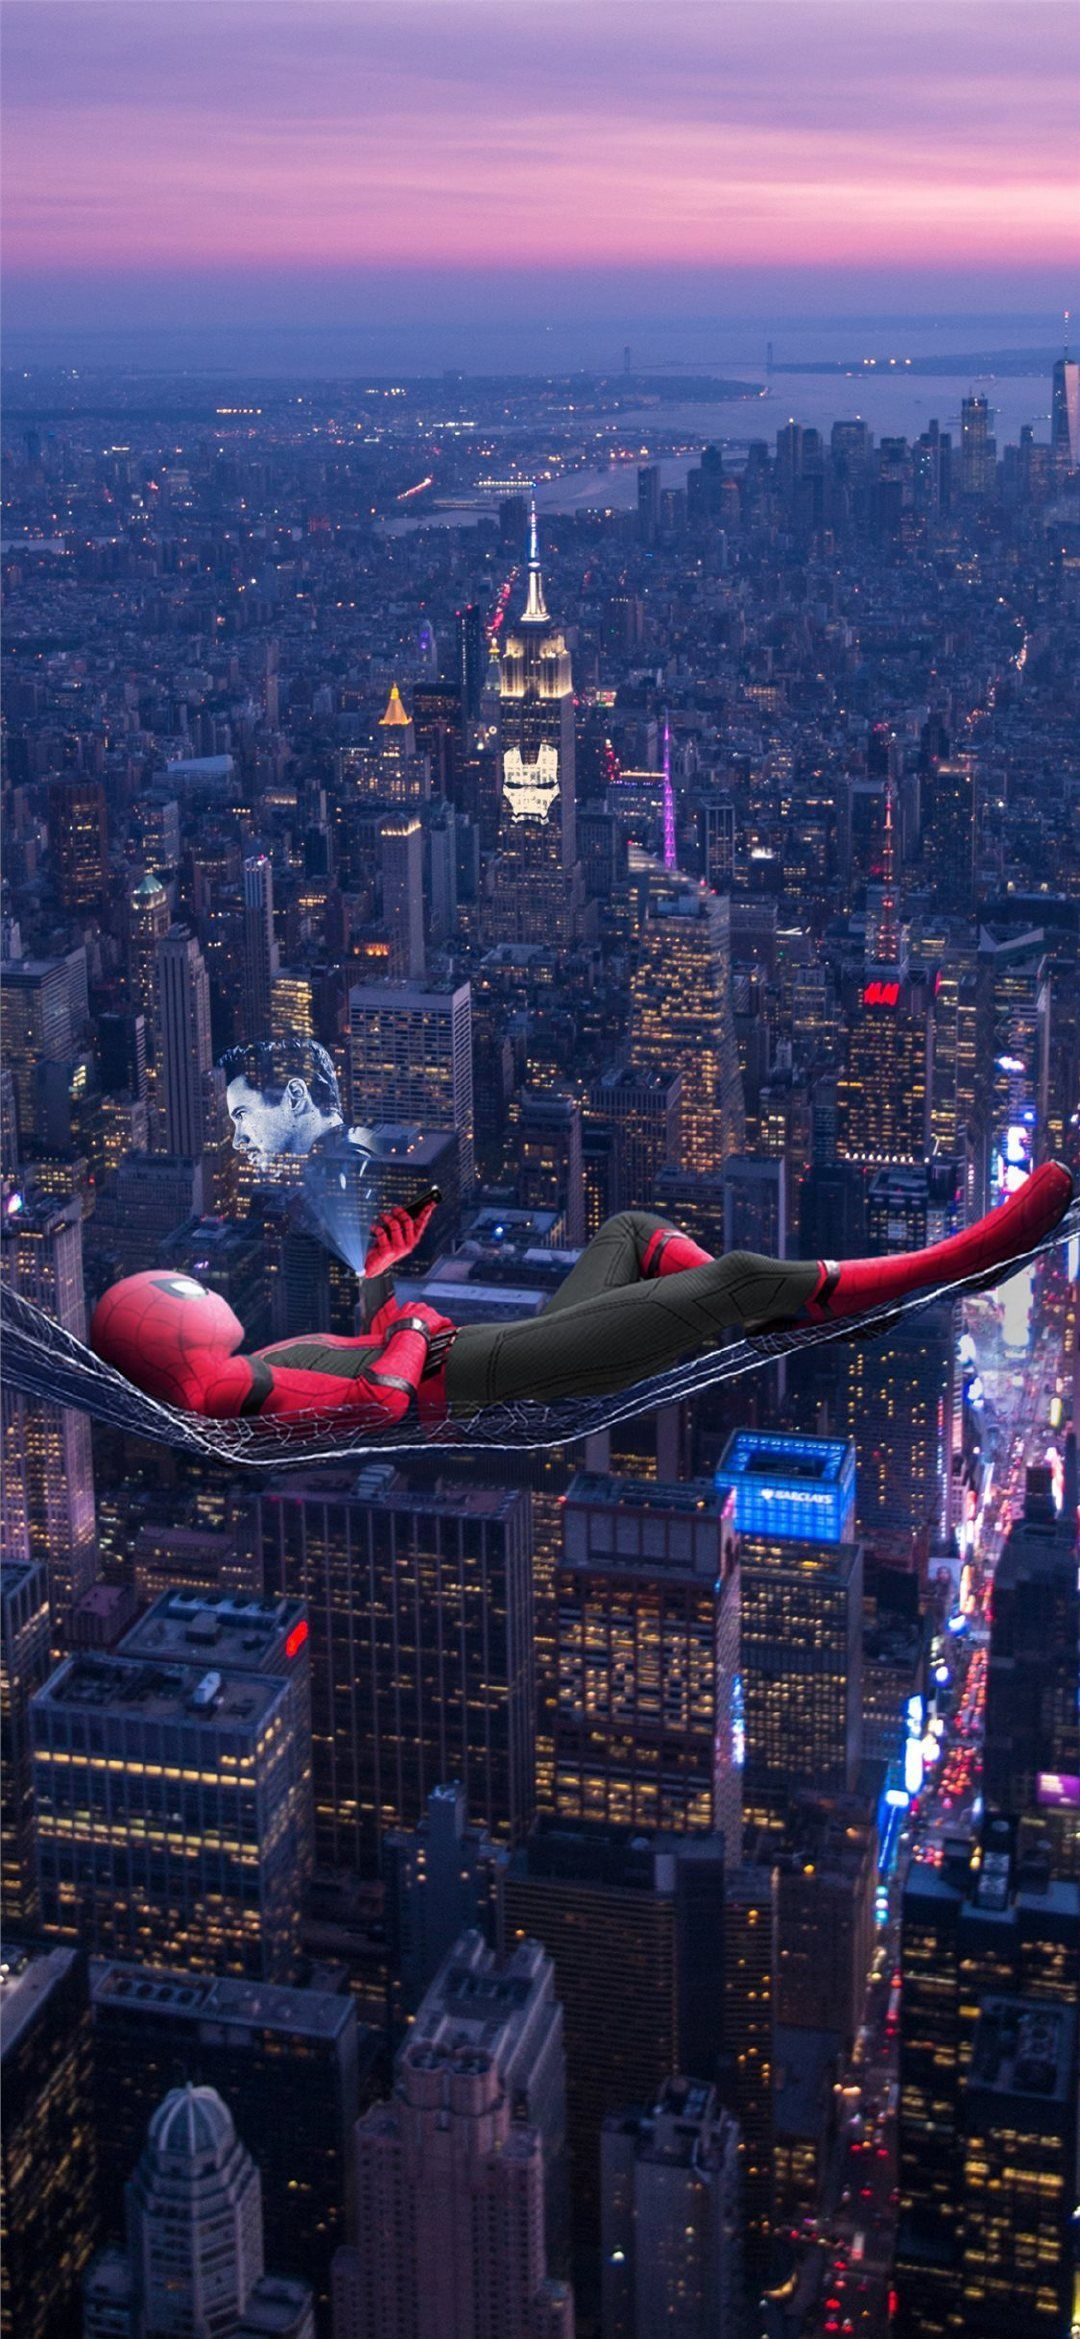 Iphone 11 Wallpaper Spiderman Far From Home Poster Iphone 11 Wallpaper Spiderma Trend In 2020 Hd Cool Wallpapers Marvel Wallpaper Avengers Wallpaper